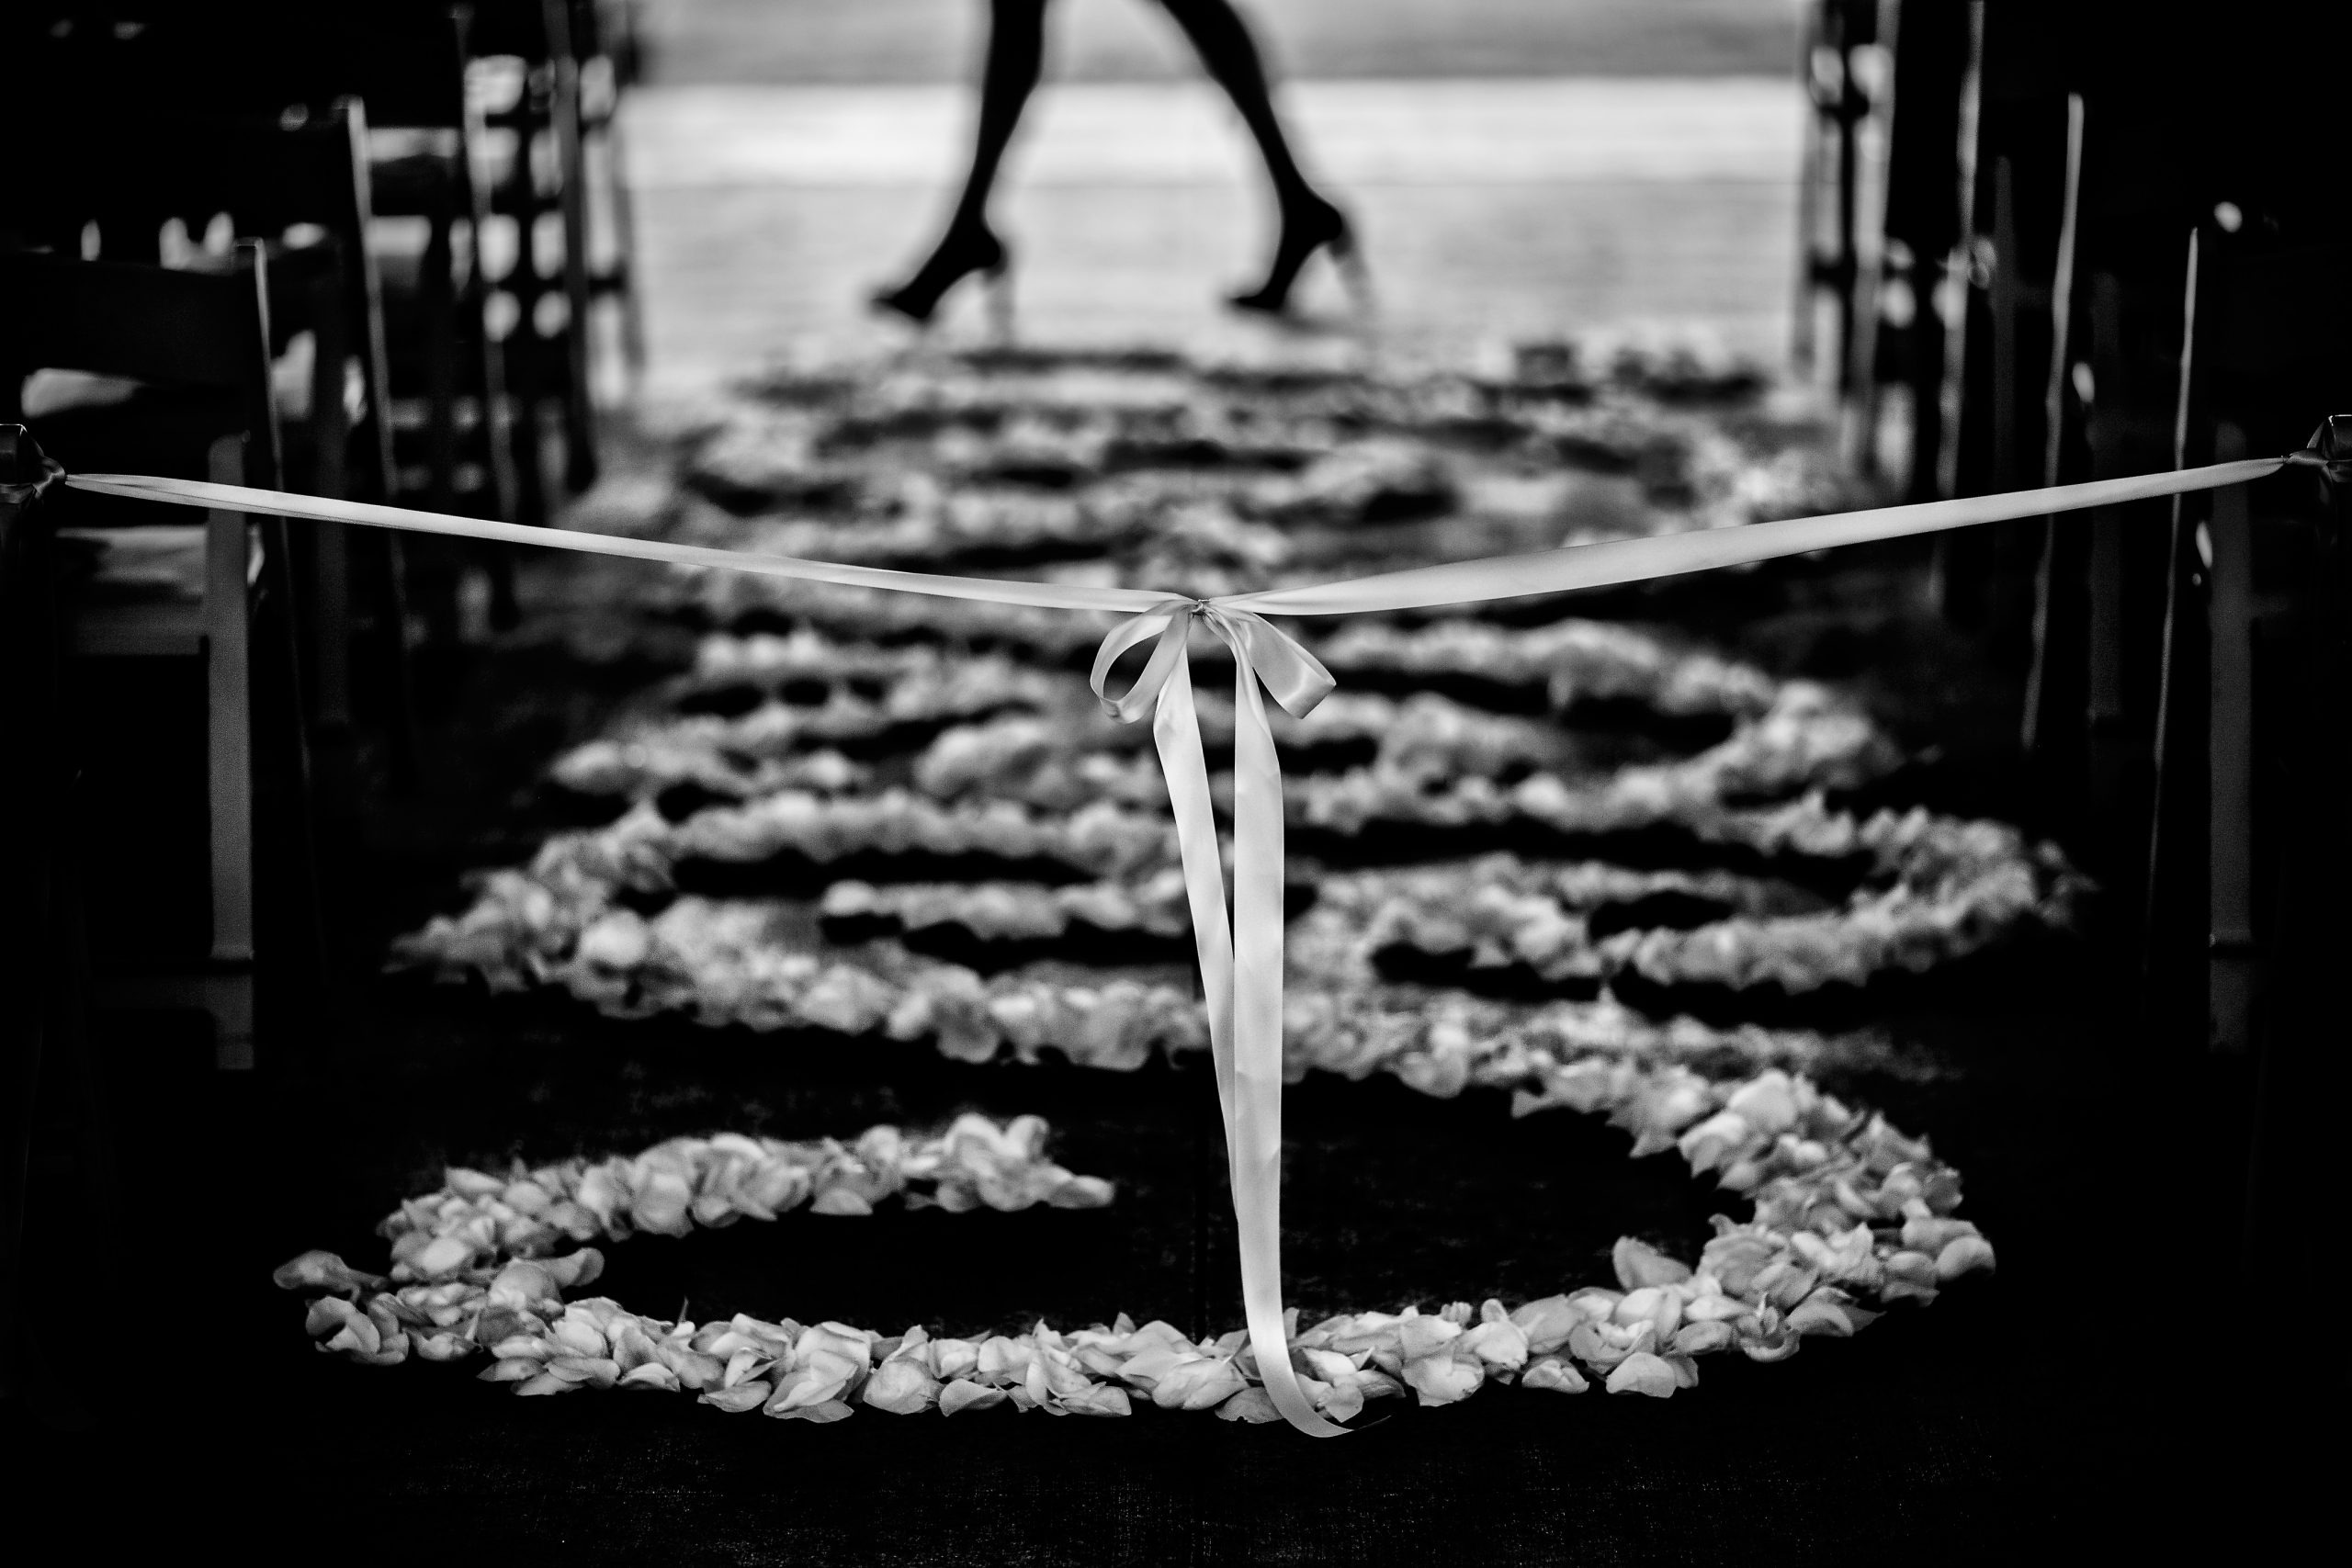 Wedding aisle showered in flower petals is blocked off with a white ribbon as a woman in heels walk across in the background